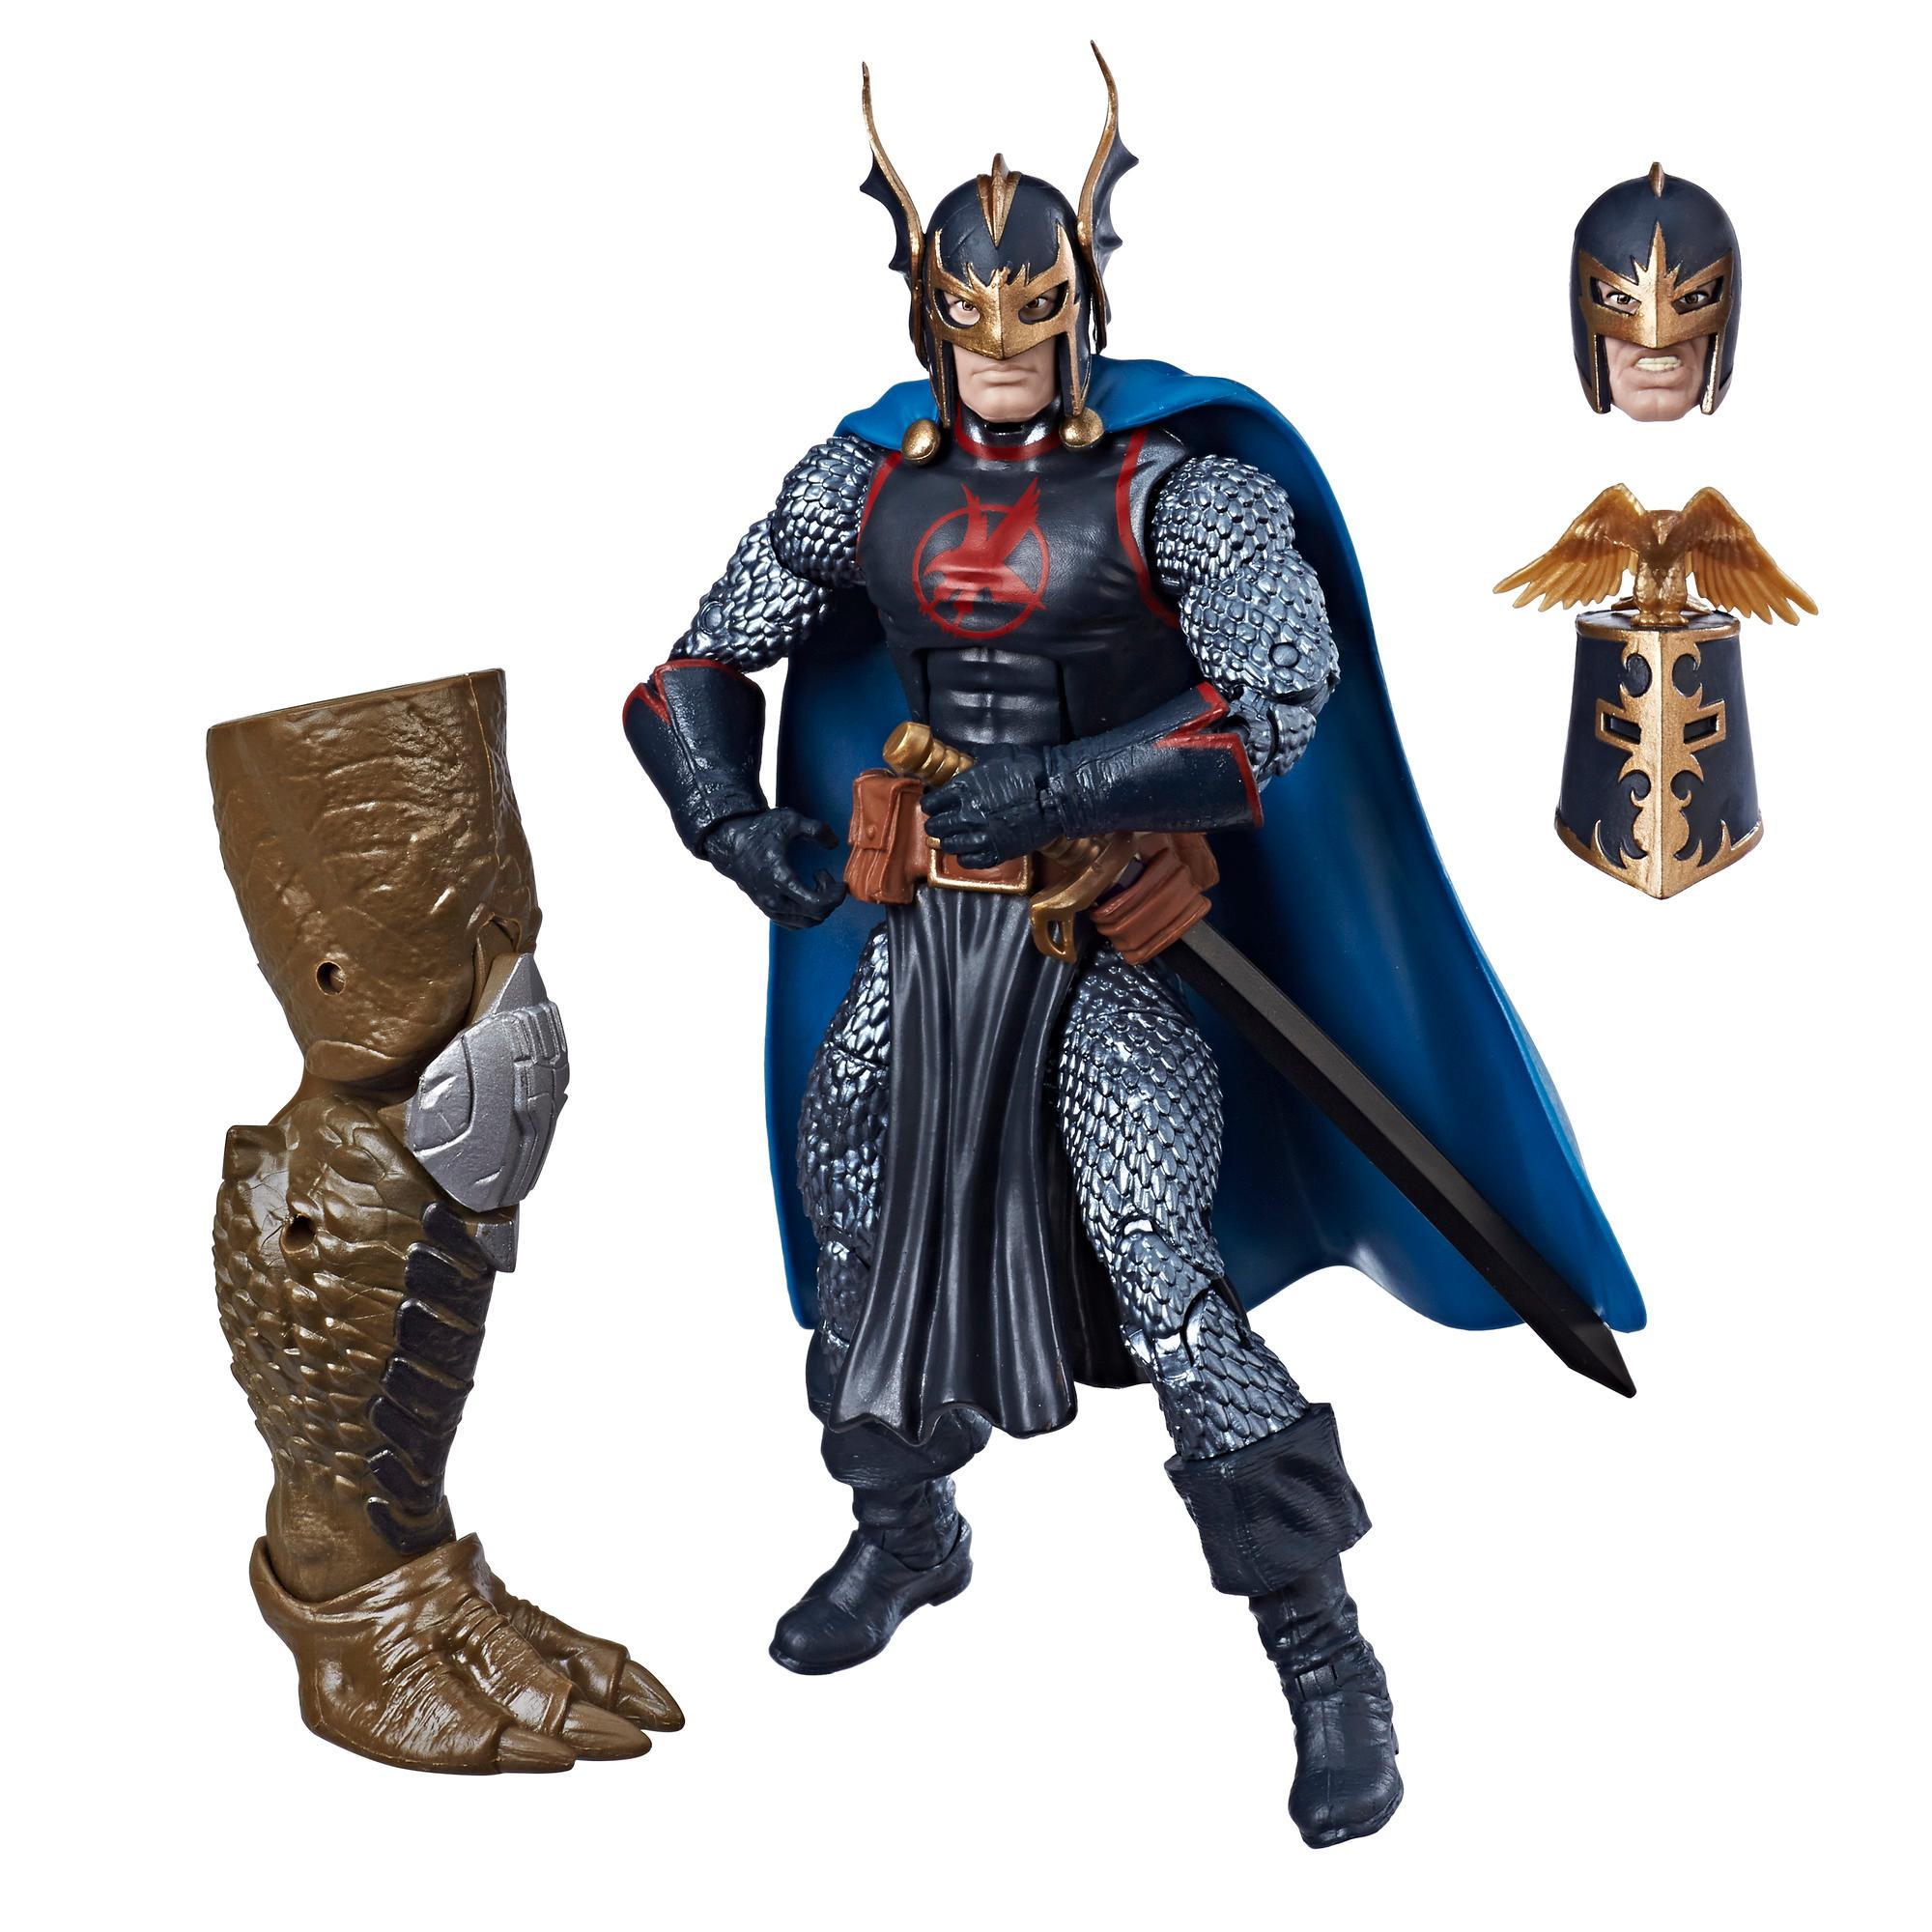 Avengers Marvel Legends Series 6-inch Marvel's Black Knight